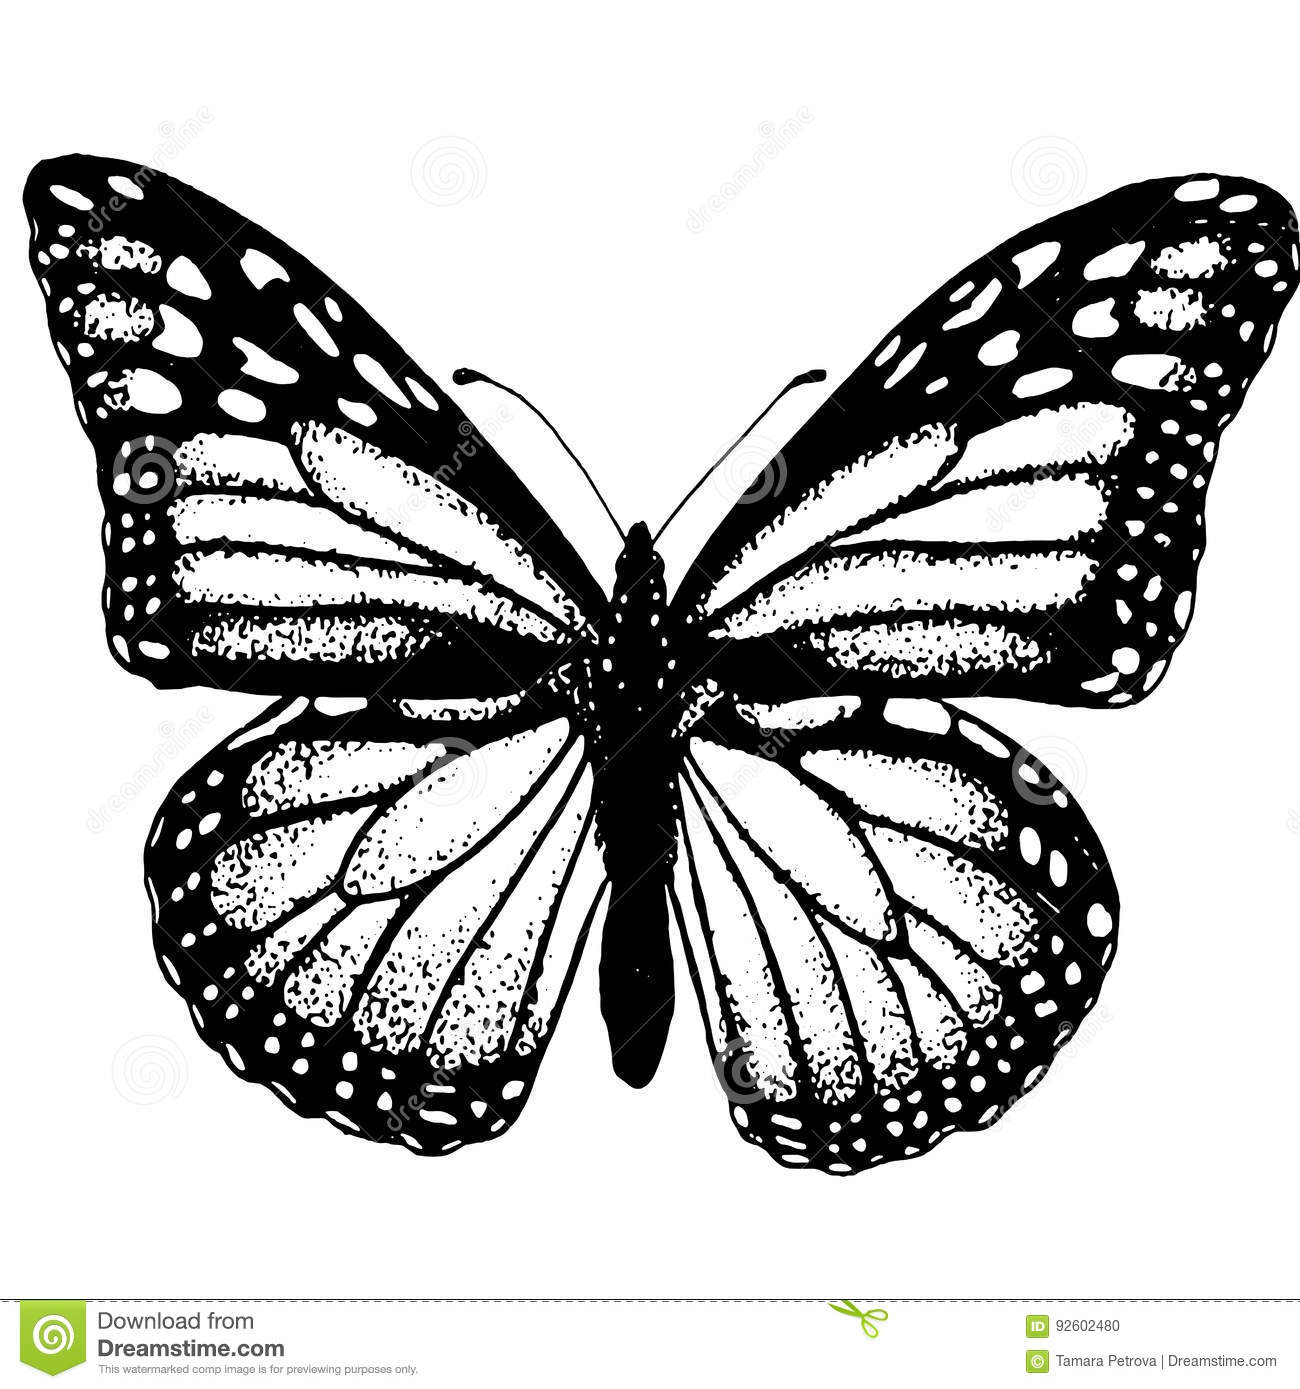 Lepidopterology section of entomology that studies butterflies